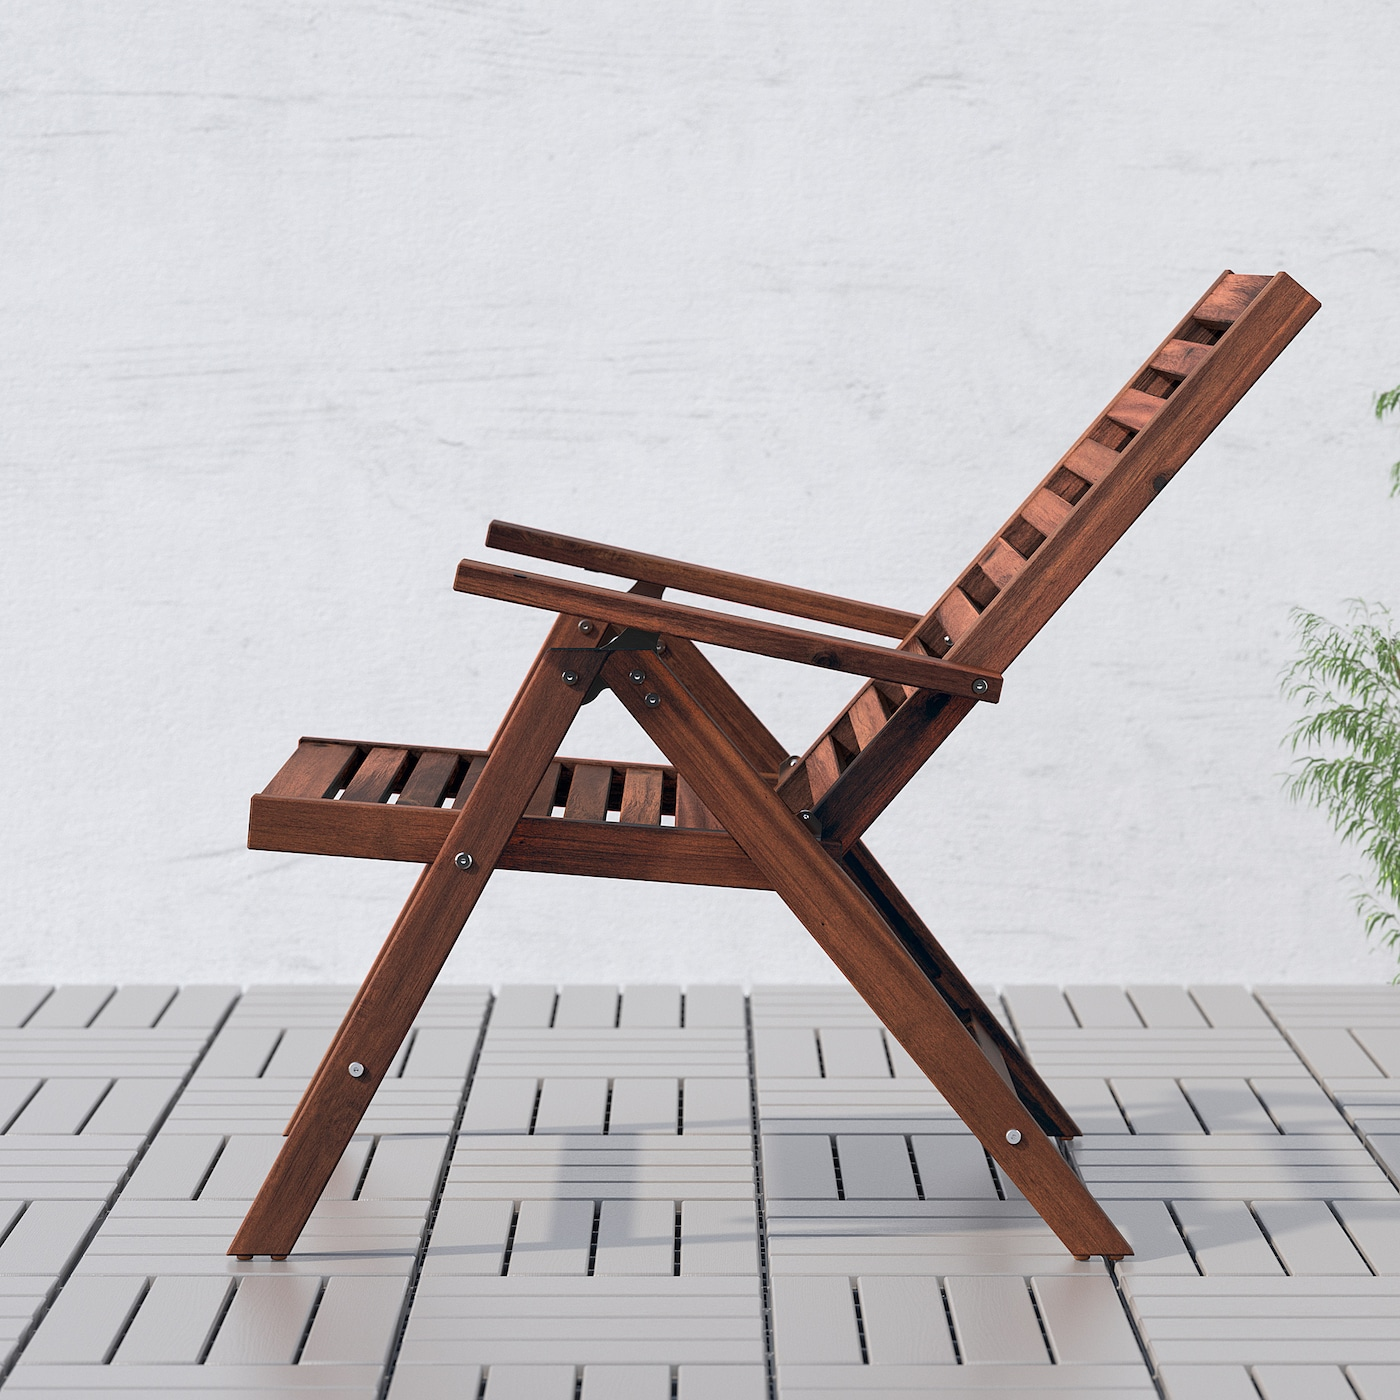 Applaro Reclining Chair Outdoor Foldable Brown Stained Ikea